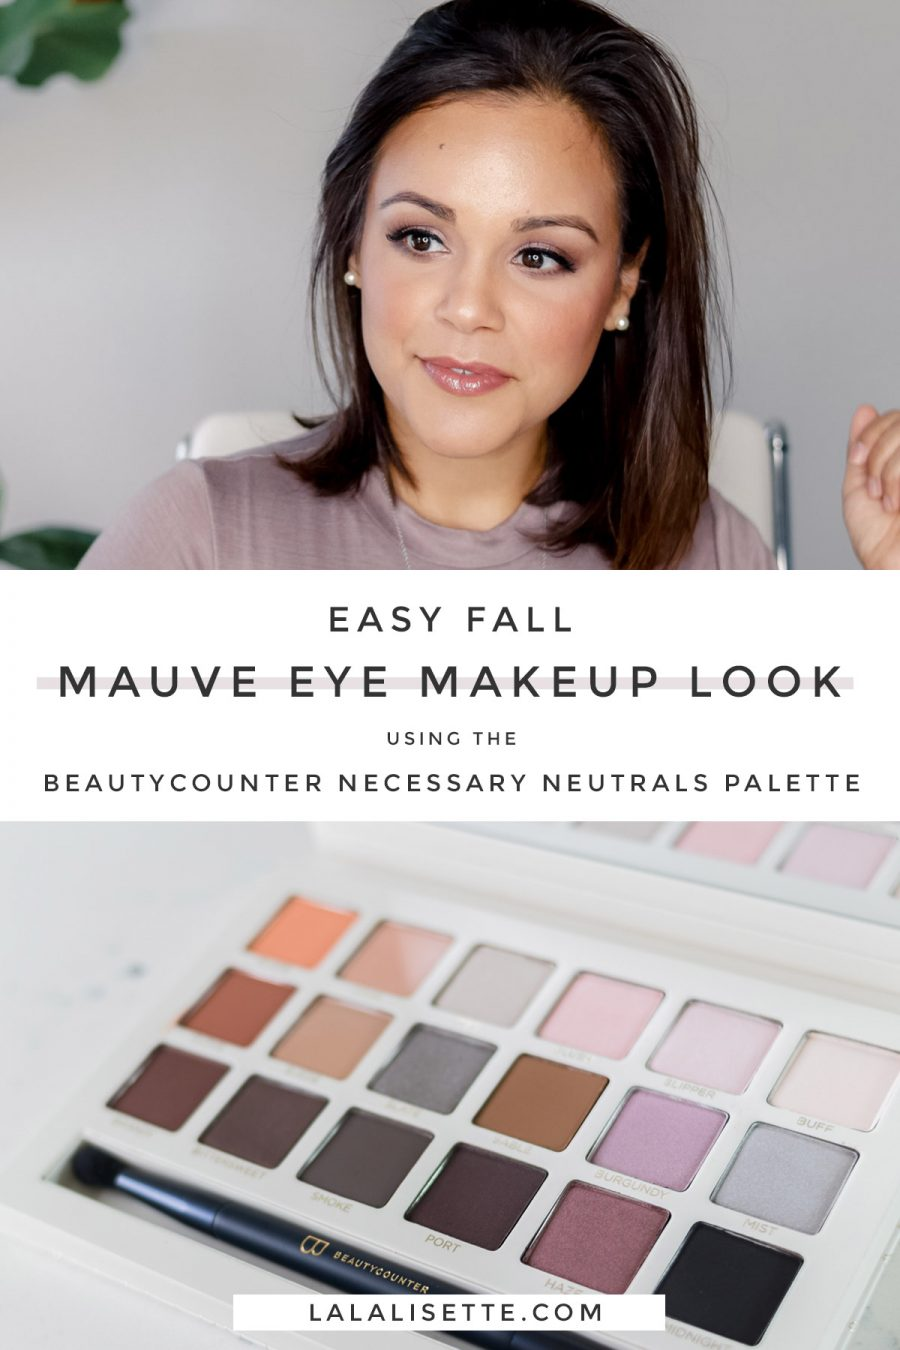 """image of blogger and Beautycounter Necessary Neutrals Palette with text: """"Easy Fall Mauve Eye Makeup Look using the Beautycounter Necessary Neutrals Palette"""""""